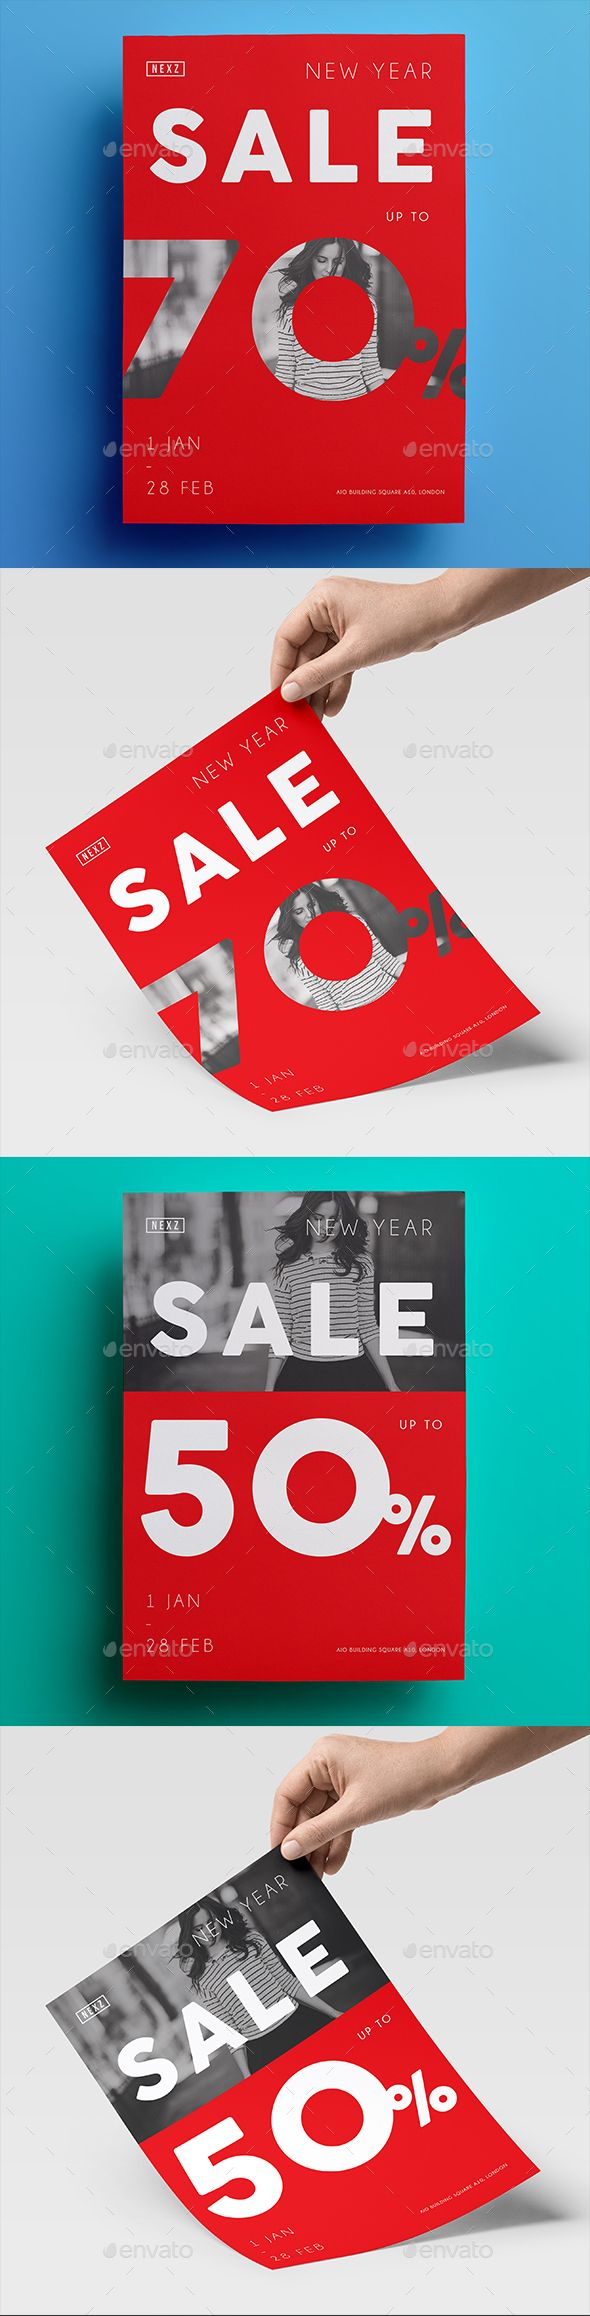 Sale Flyer — Photoshop PSD #promo #off • Available here → https://graphicriver.net/item/sale-flyer/19254675?ref=pxcr